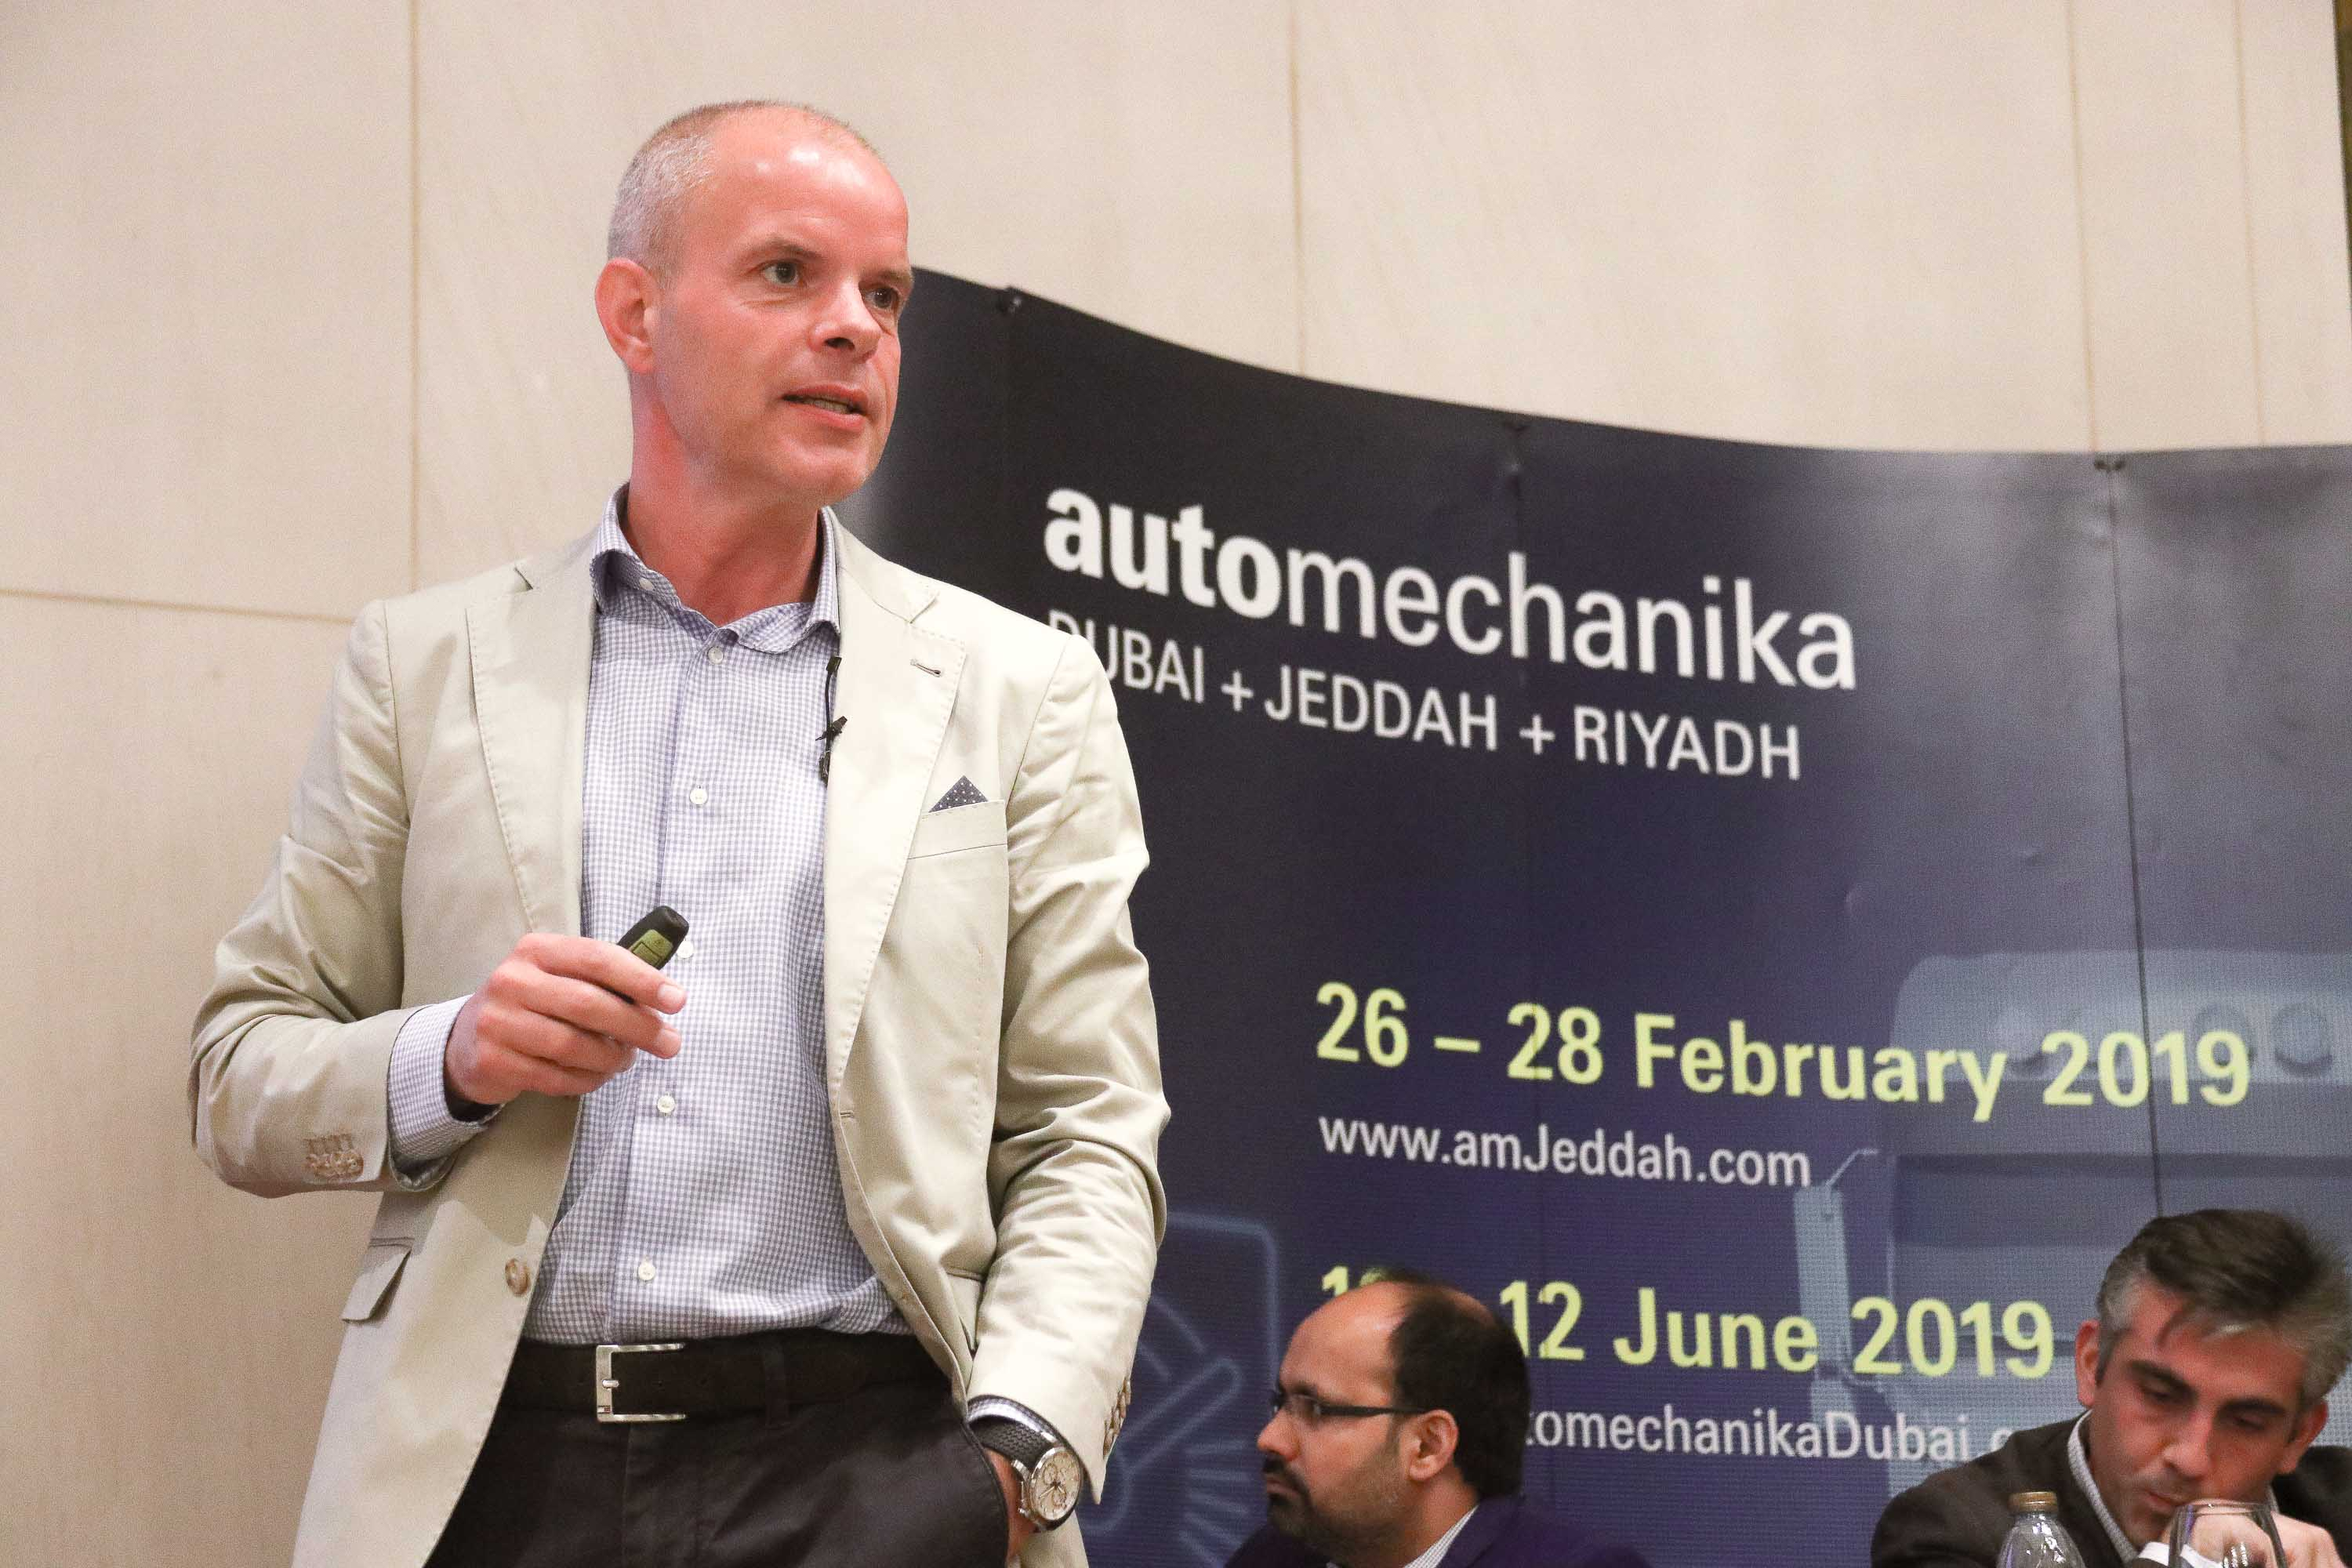 Experts Say Big Data and AI to Play Key Role in Automotive Aftermarket in the Middle East